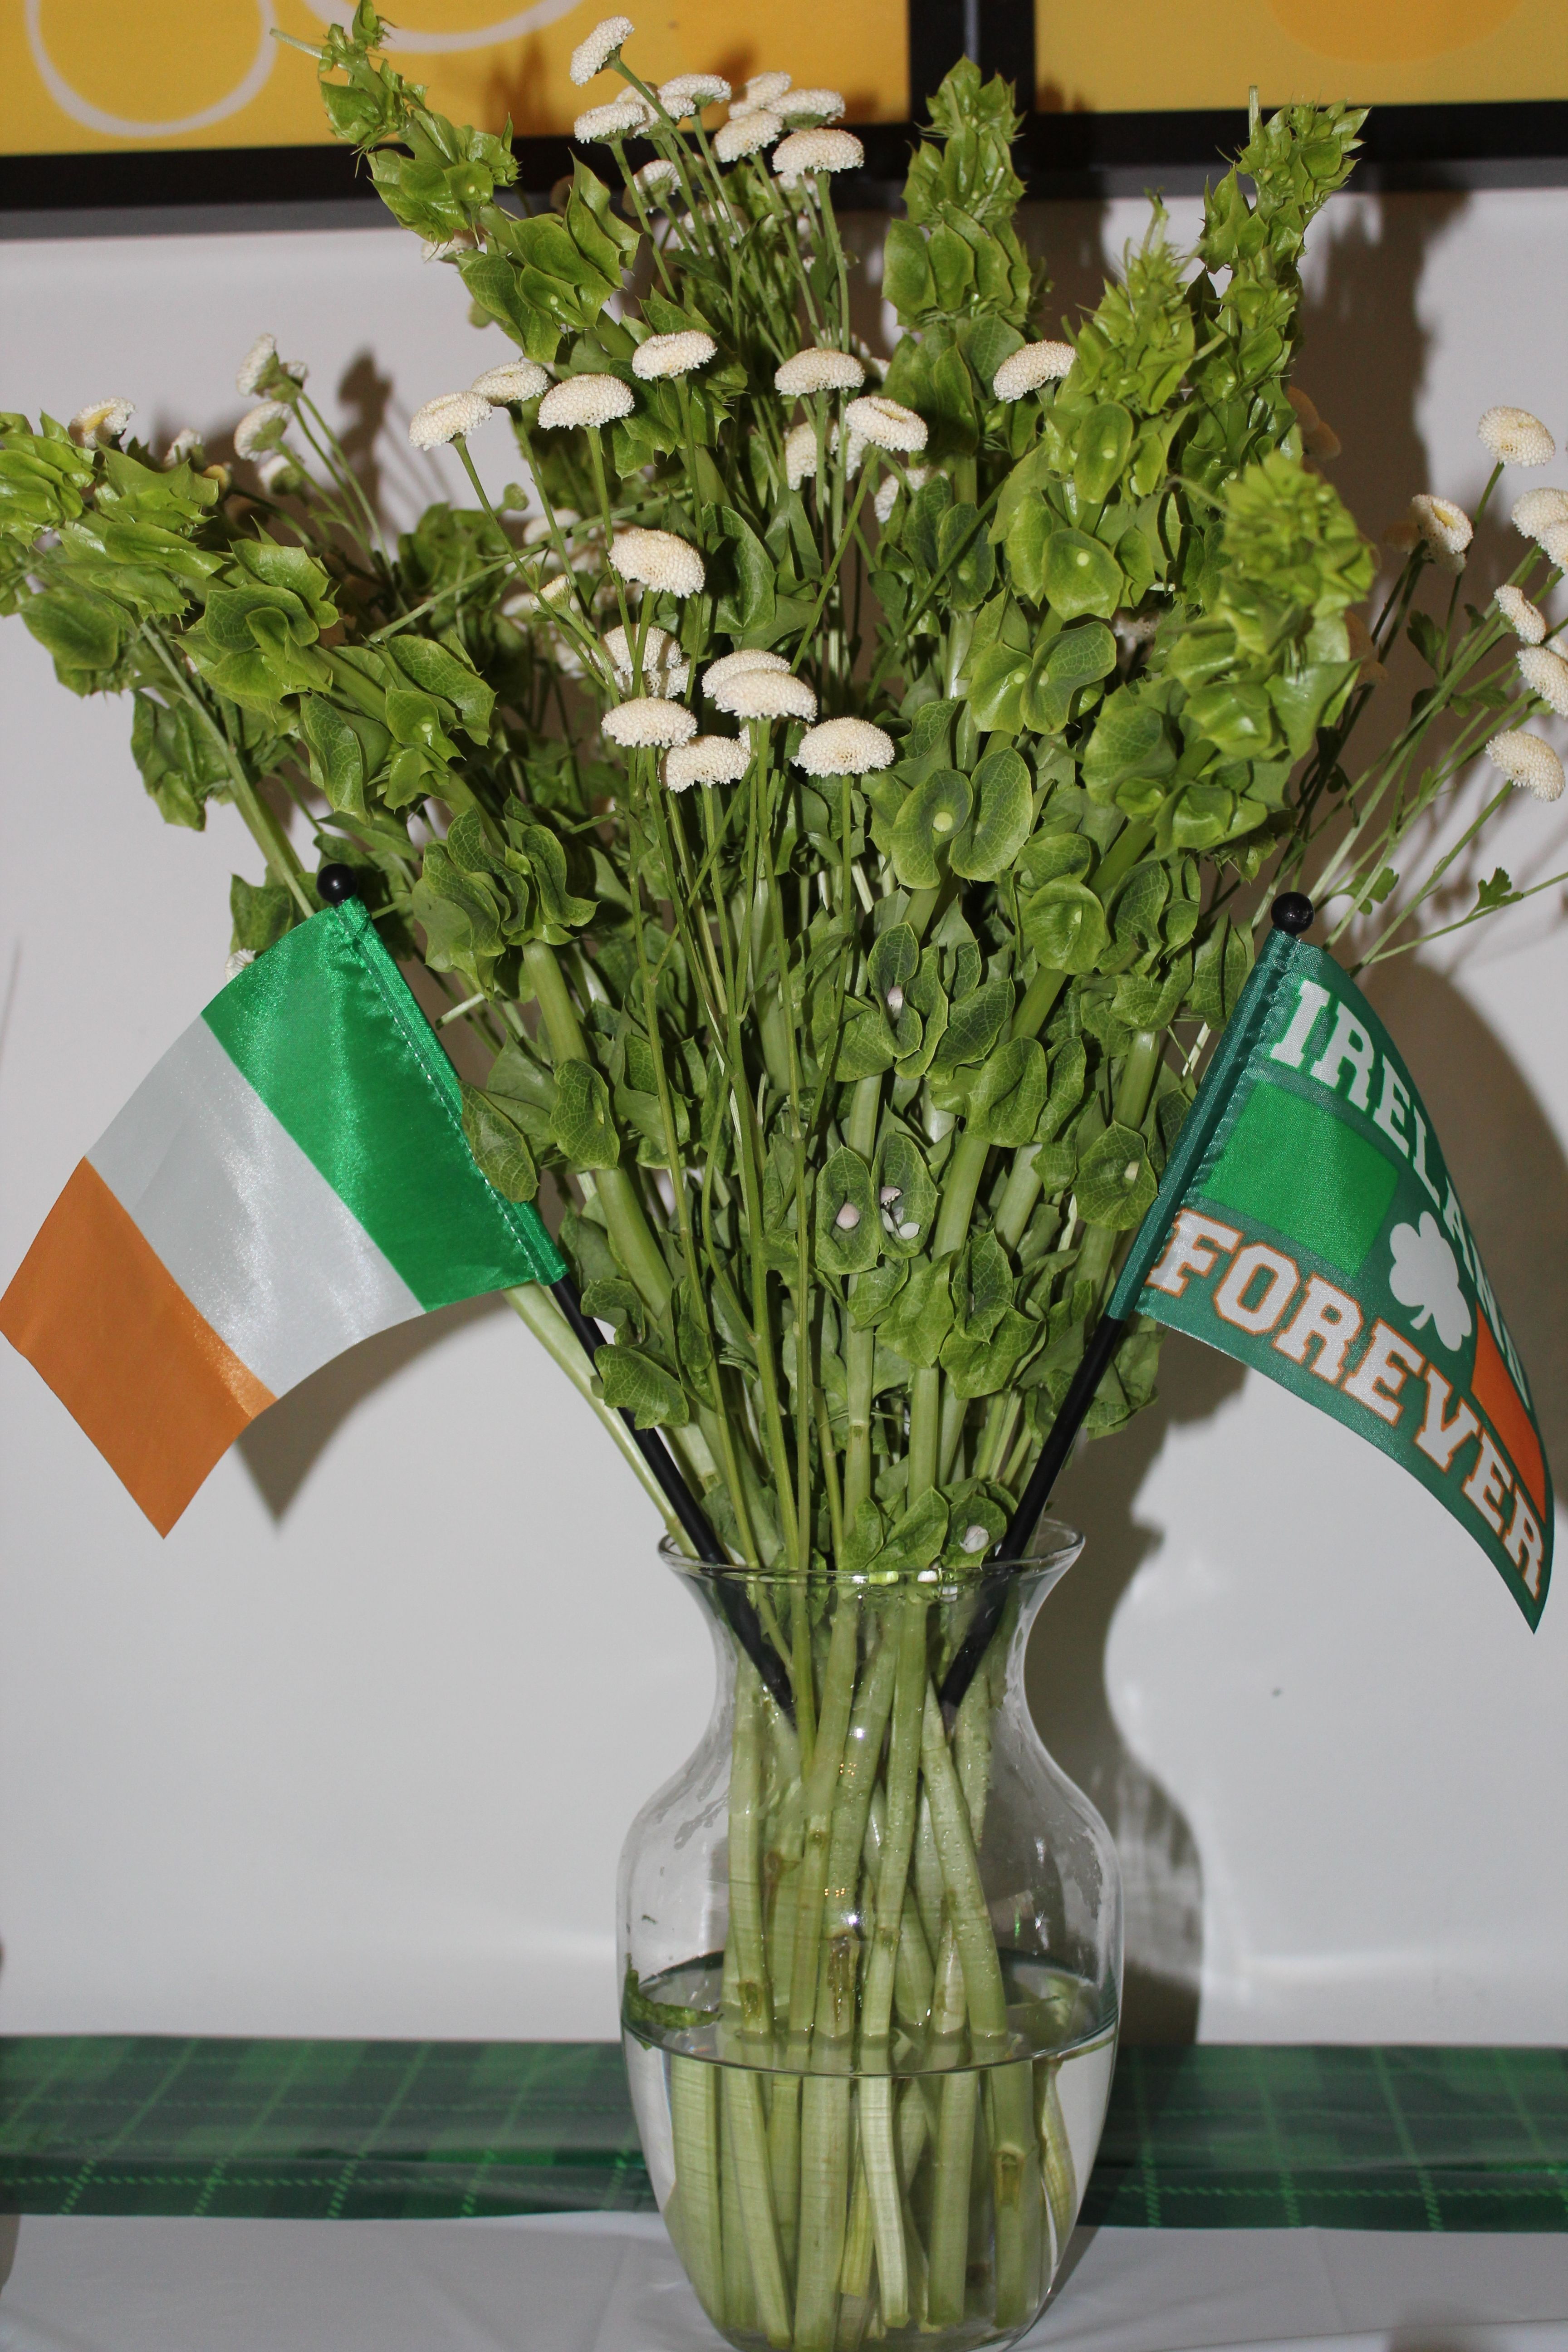 My st pattys day centerpiece bells of ireland little white pattys day centerpiece bells of ireland little white flowers i dont remember the name but i liked they were little balls irish pride flags bought a mightylinksfo